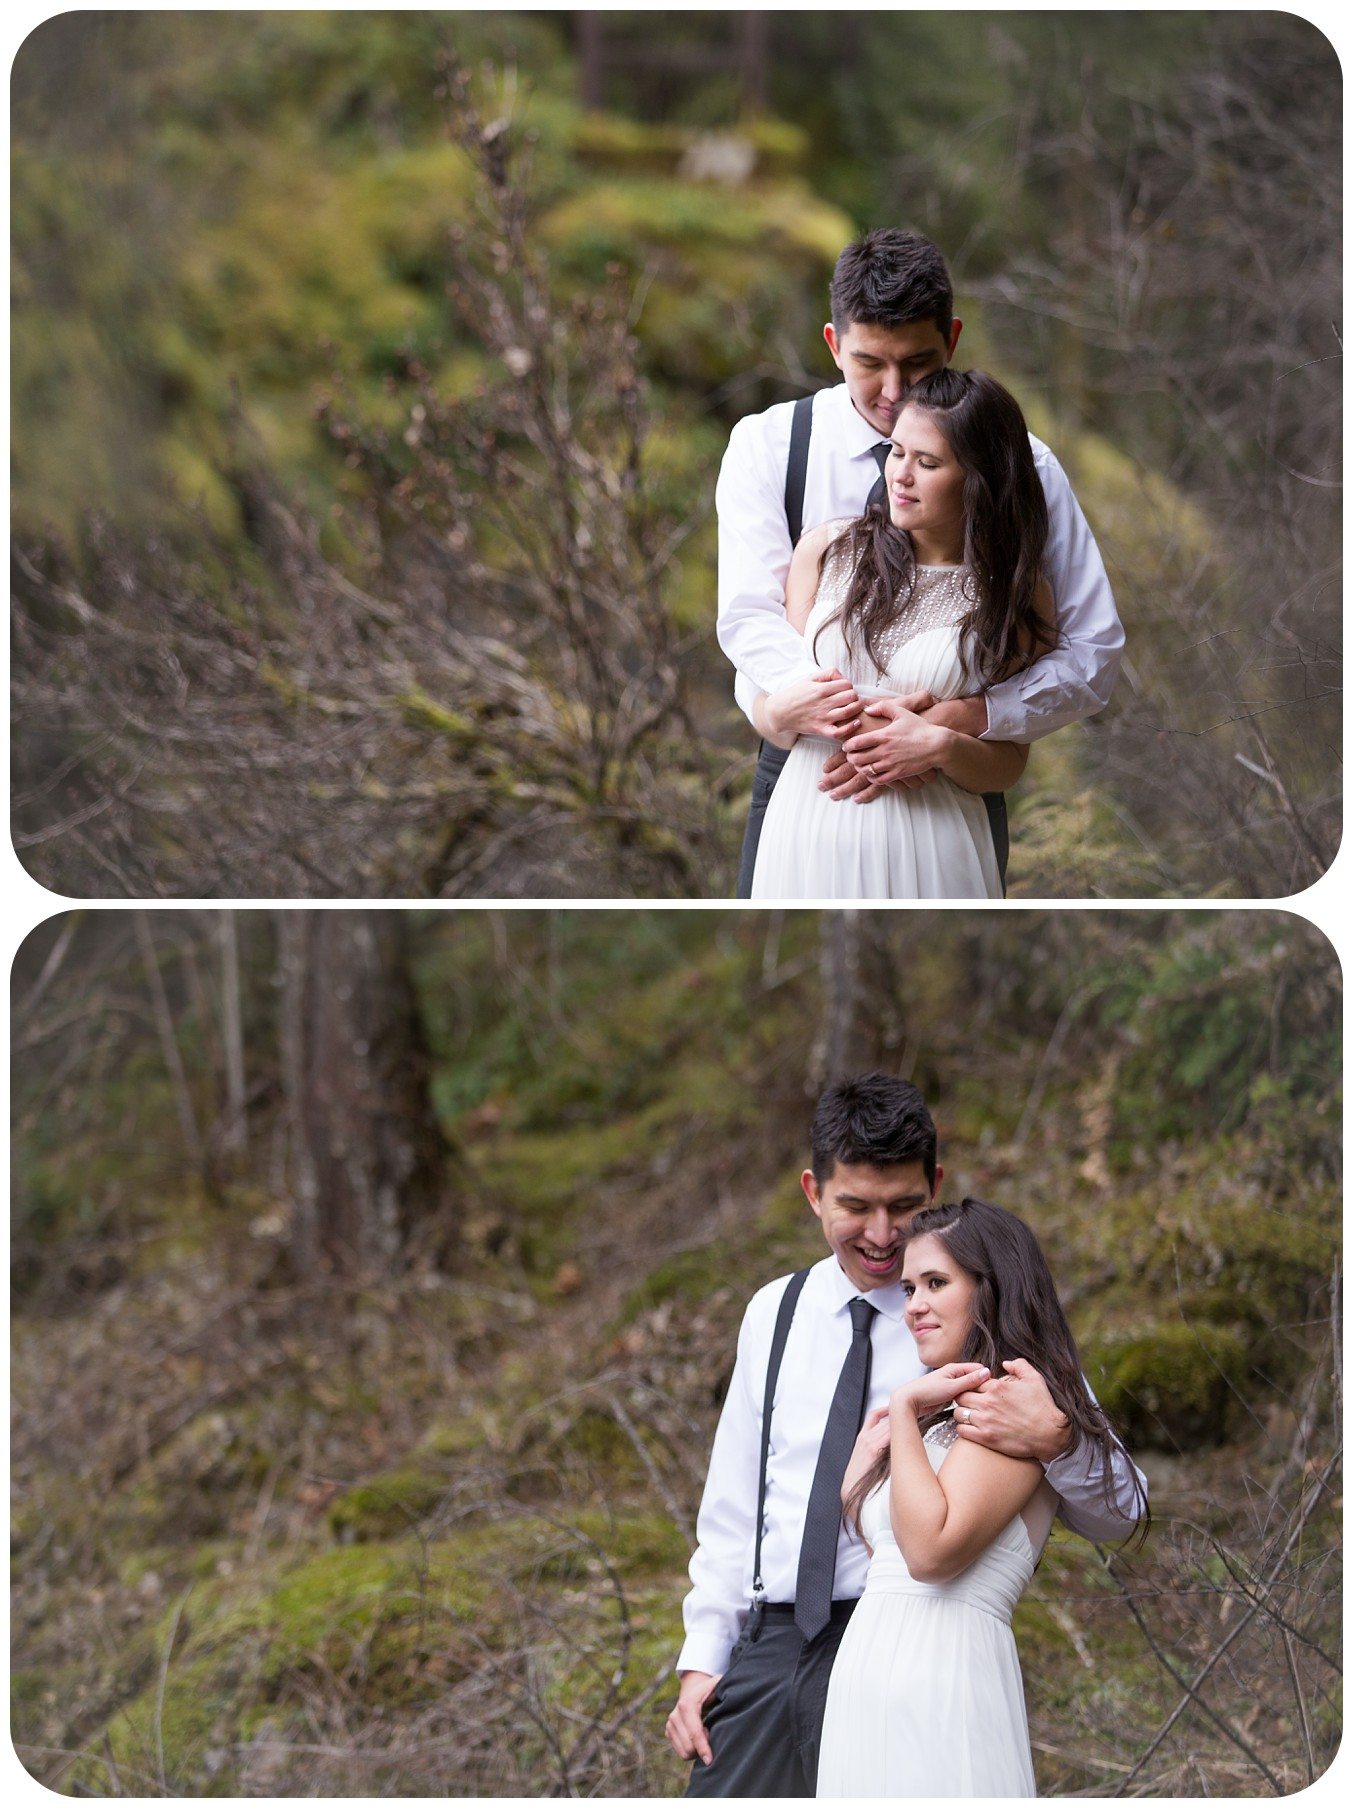 intimate wedding photos, landscape wedding photos, rustic forest wedding photographer, rustic parksville bc wedding photographer